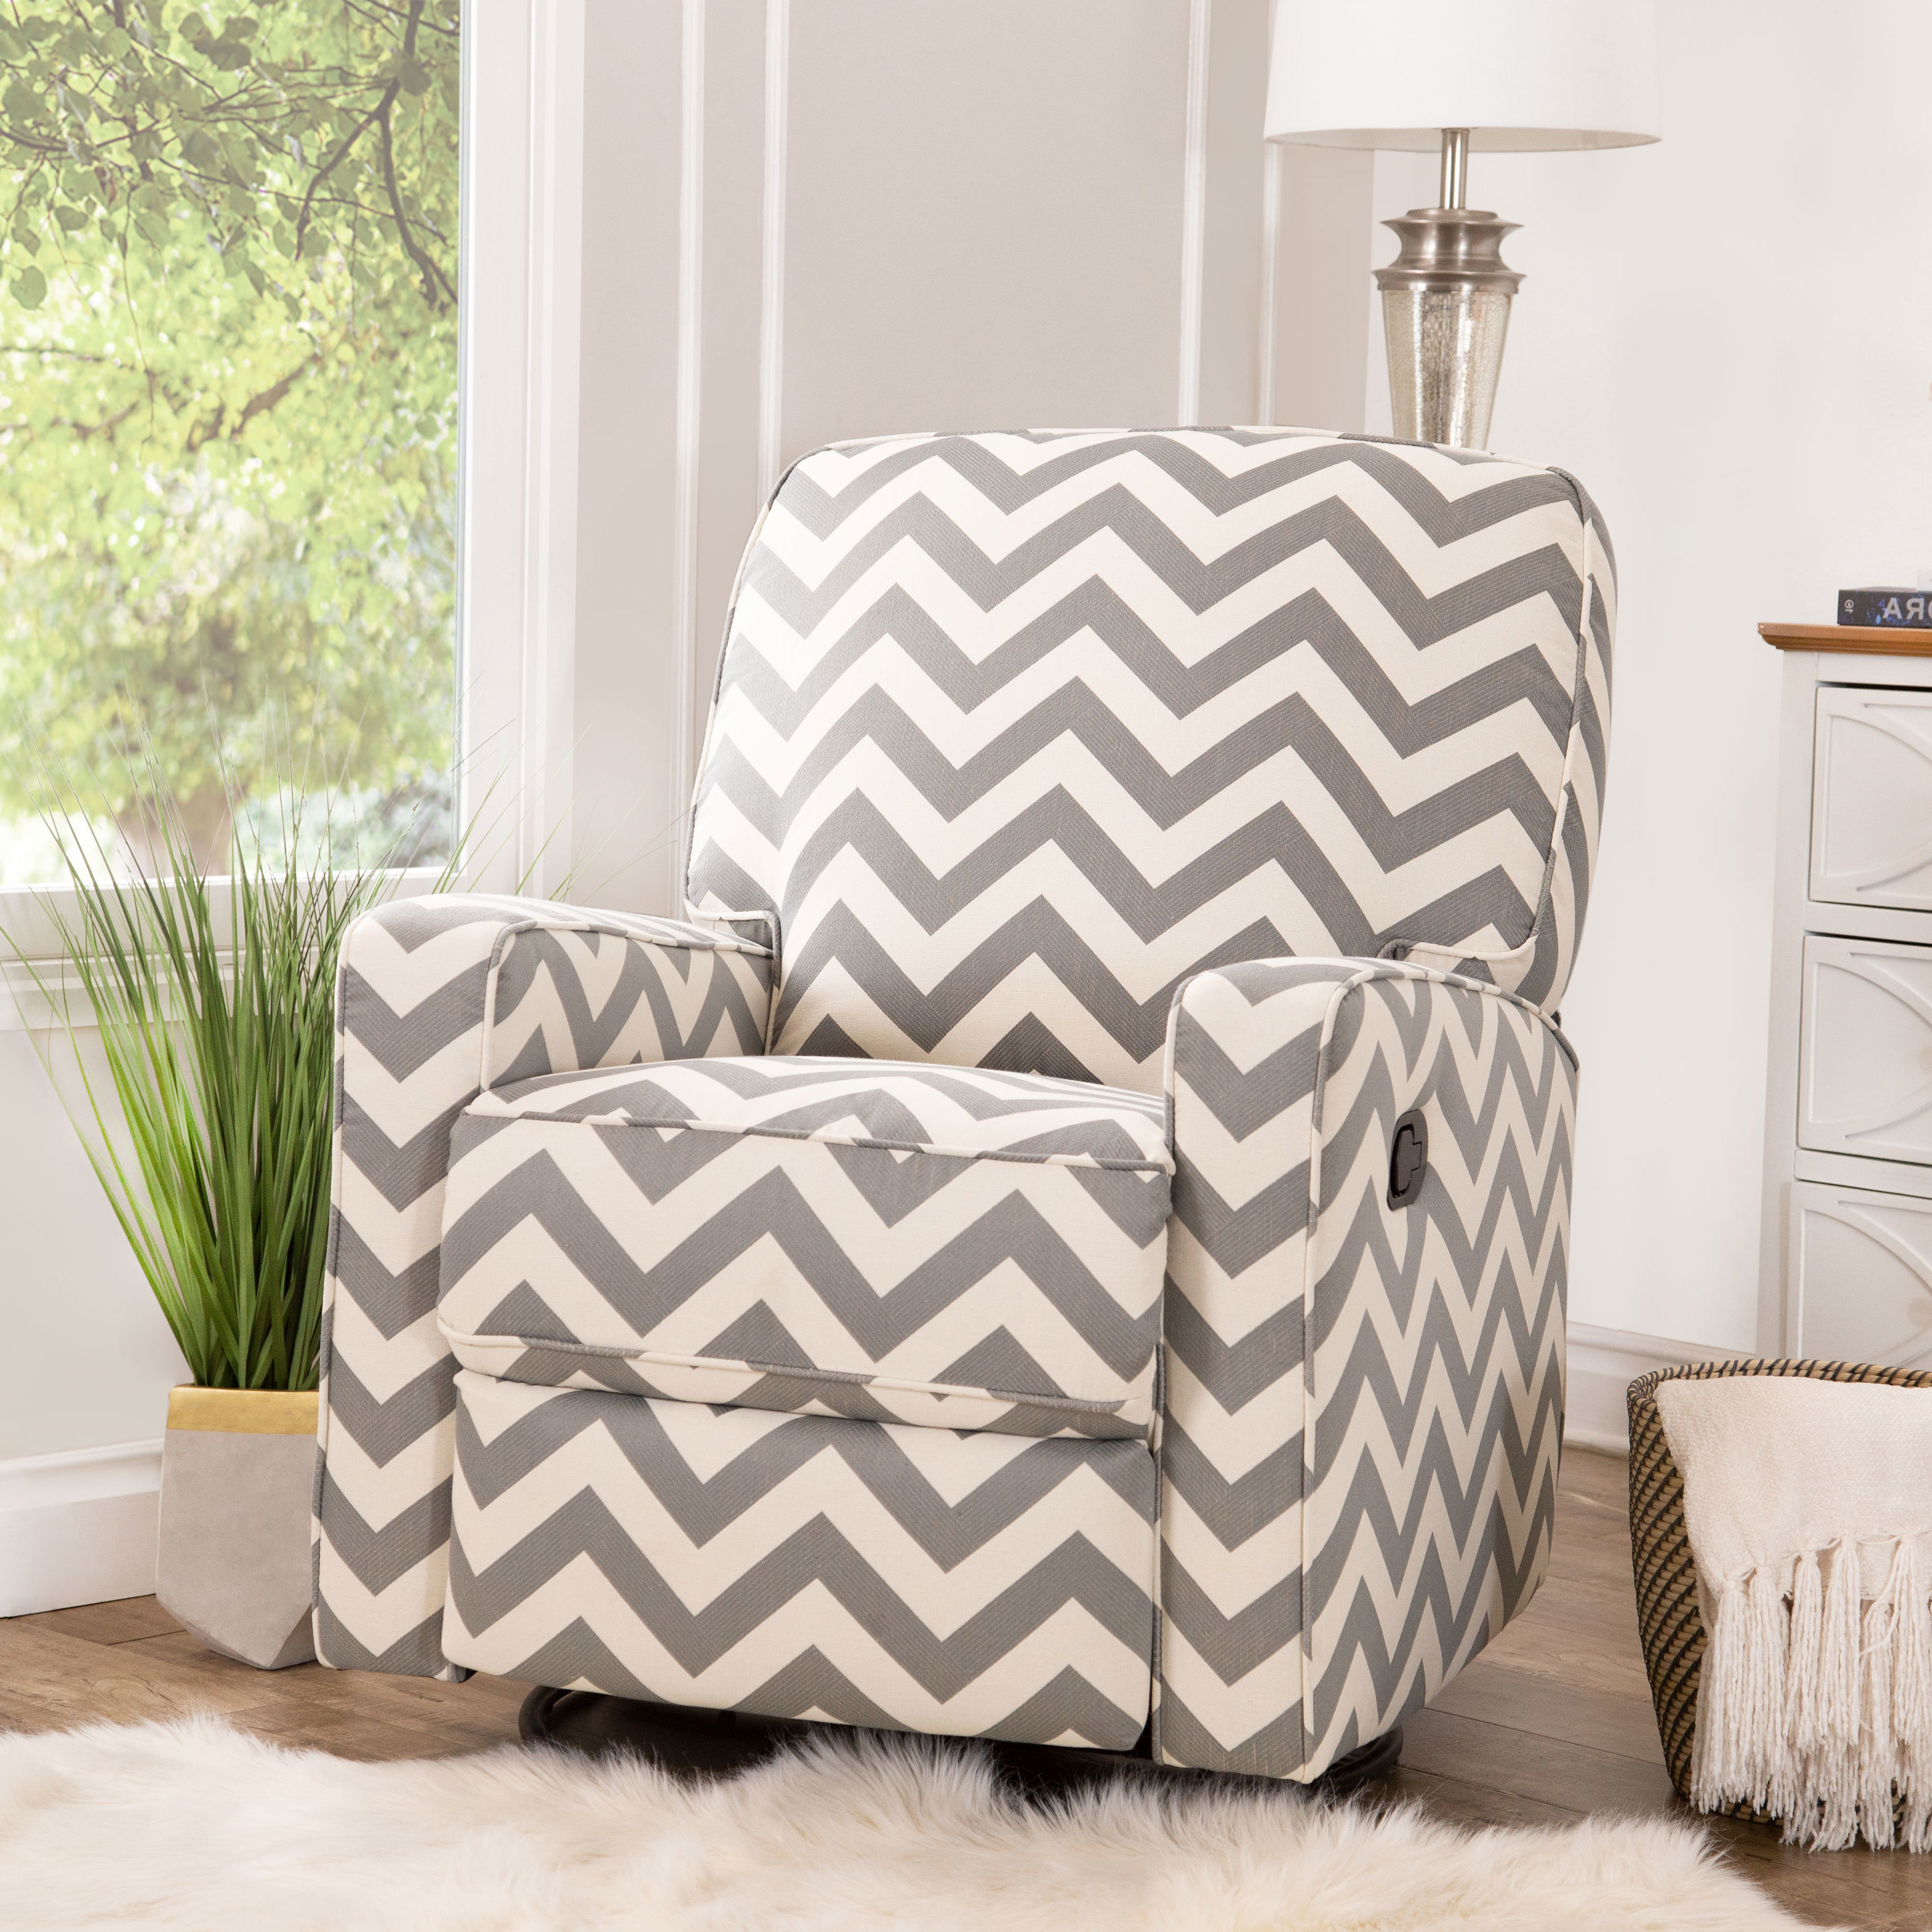 Wayfair Pertaining To 2019 Katrina Blue Swivel Glider Chairs (View 10 of 20)